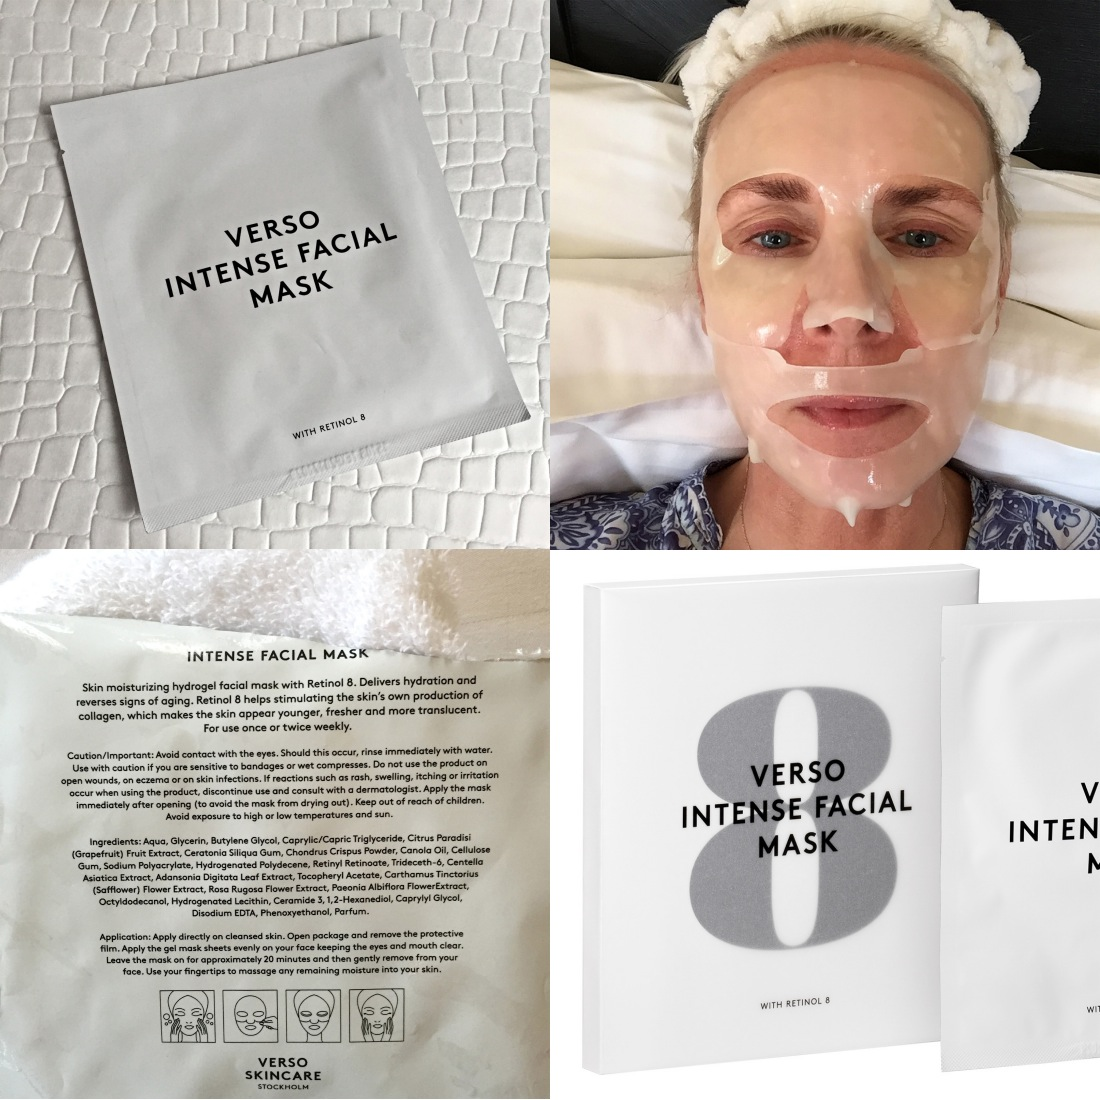 verso intense facial mask的圖片搜尋結果